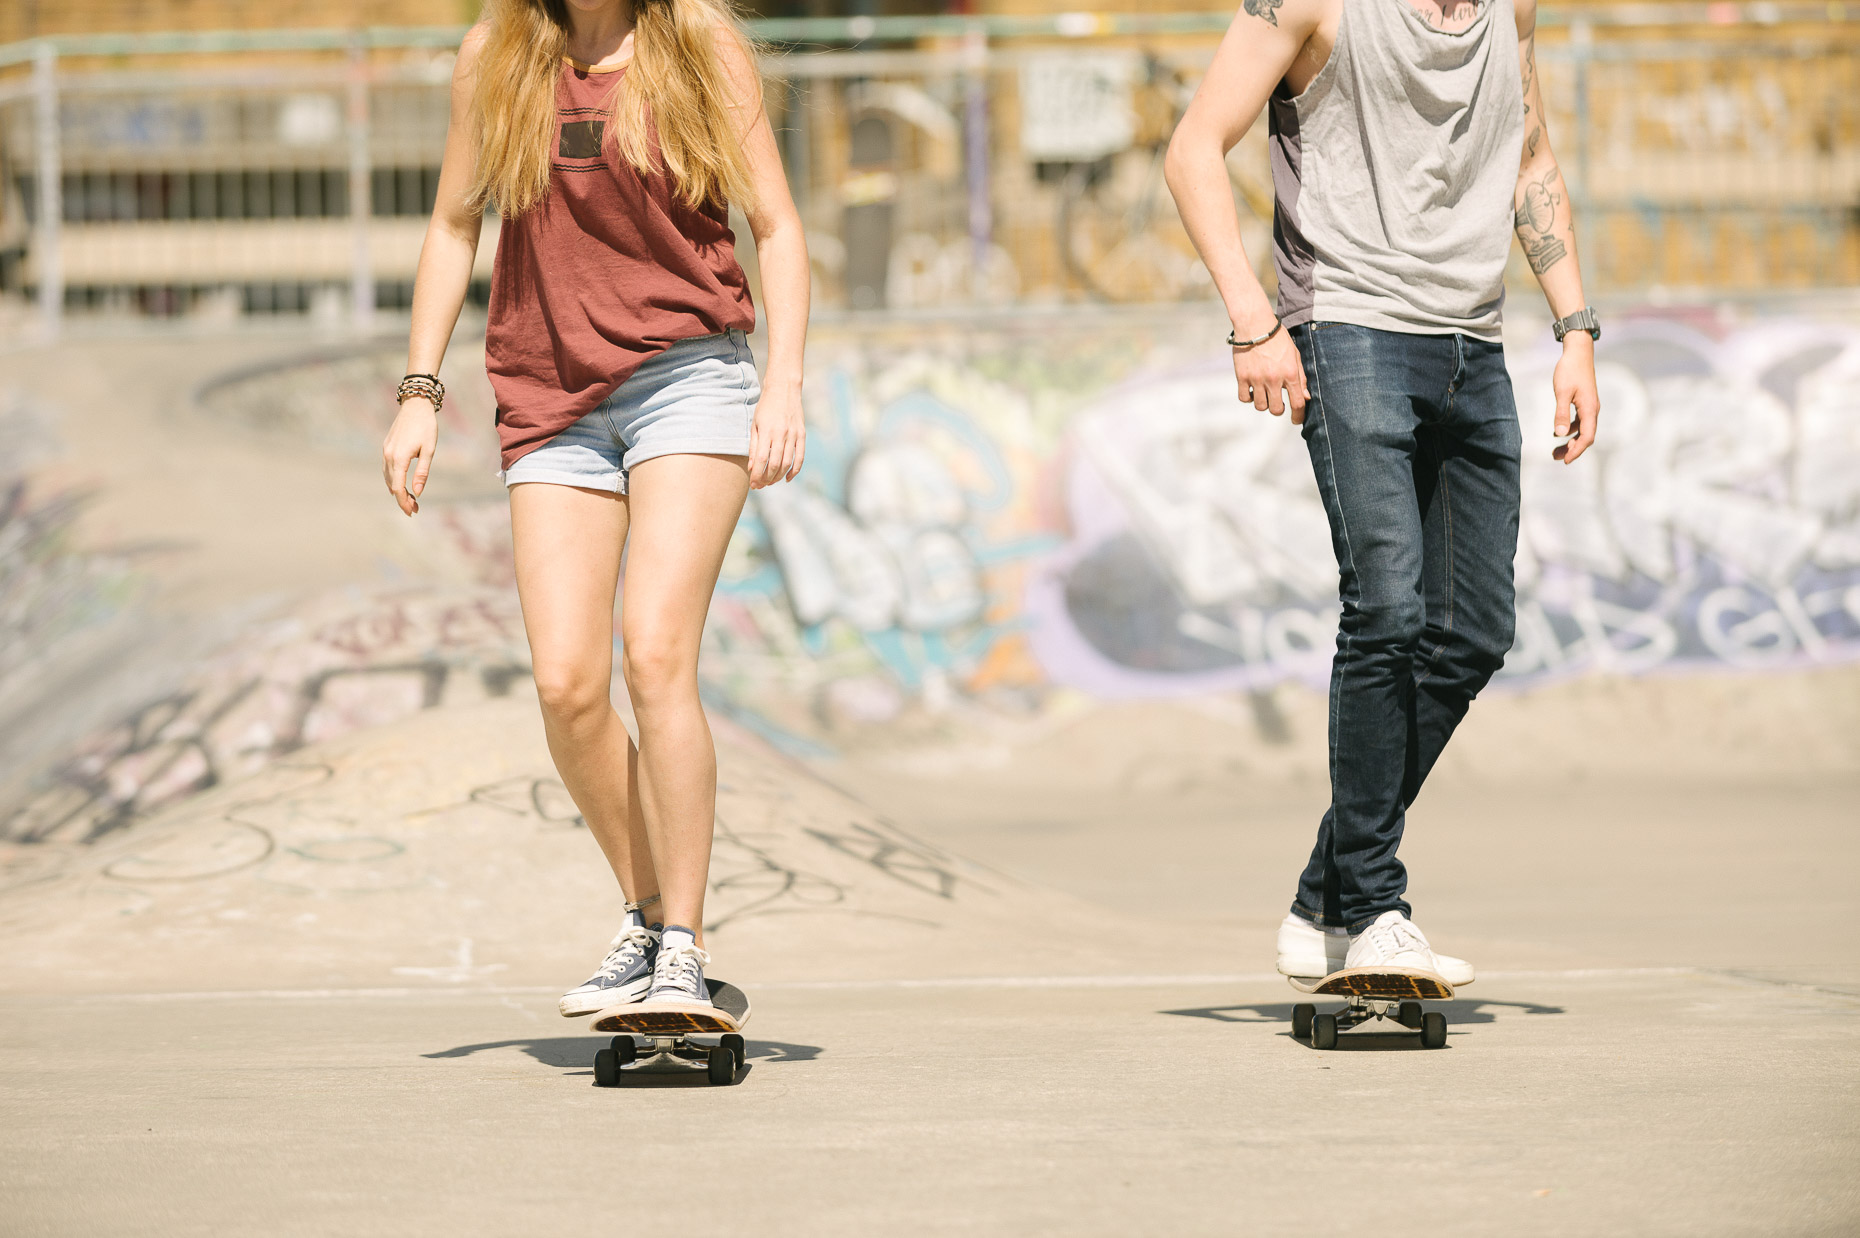 couple-on-skateboards-brixton-urban-lifestyle-london-04